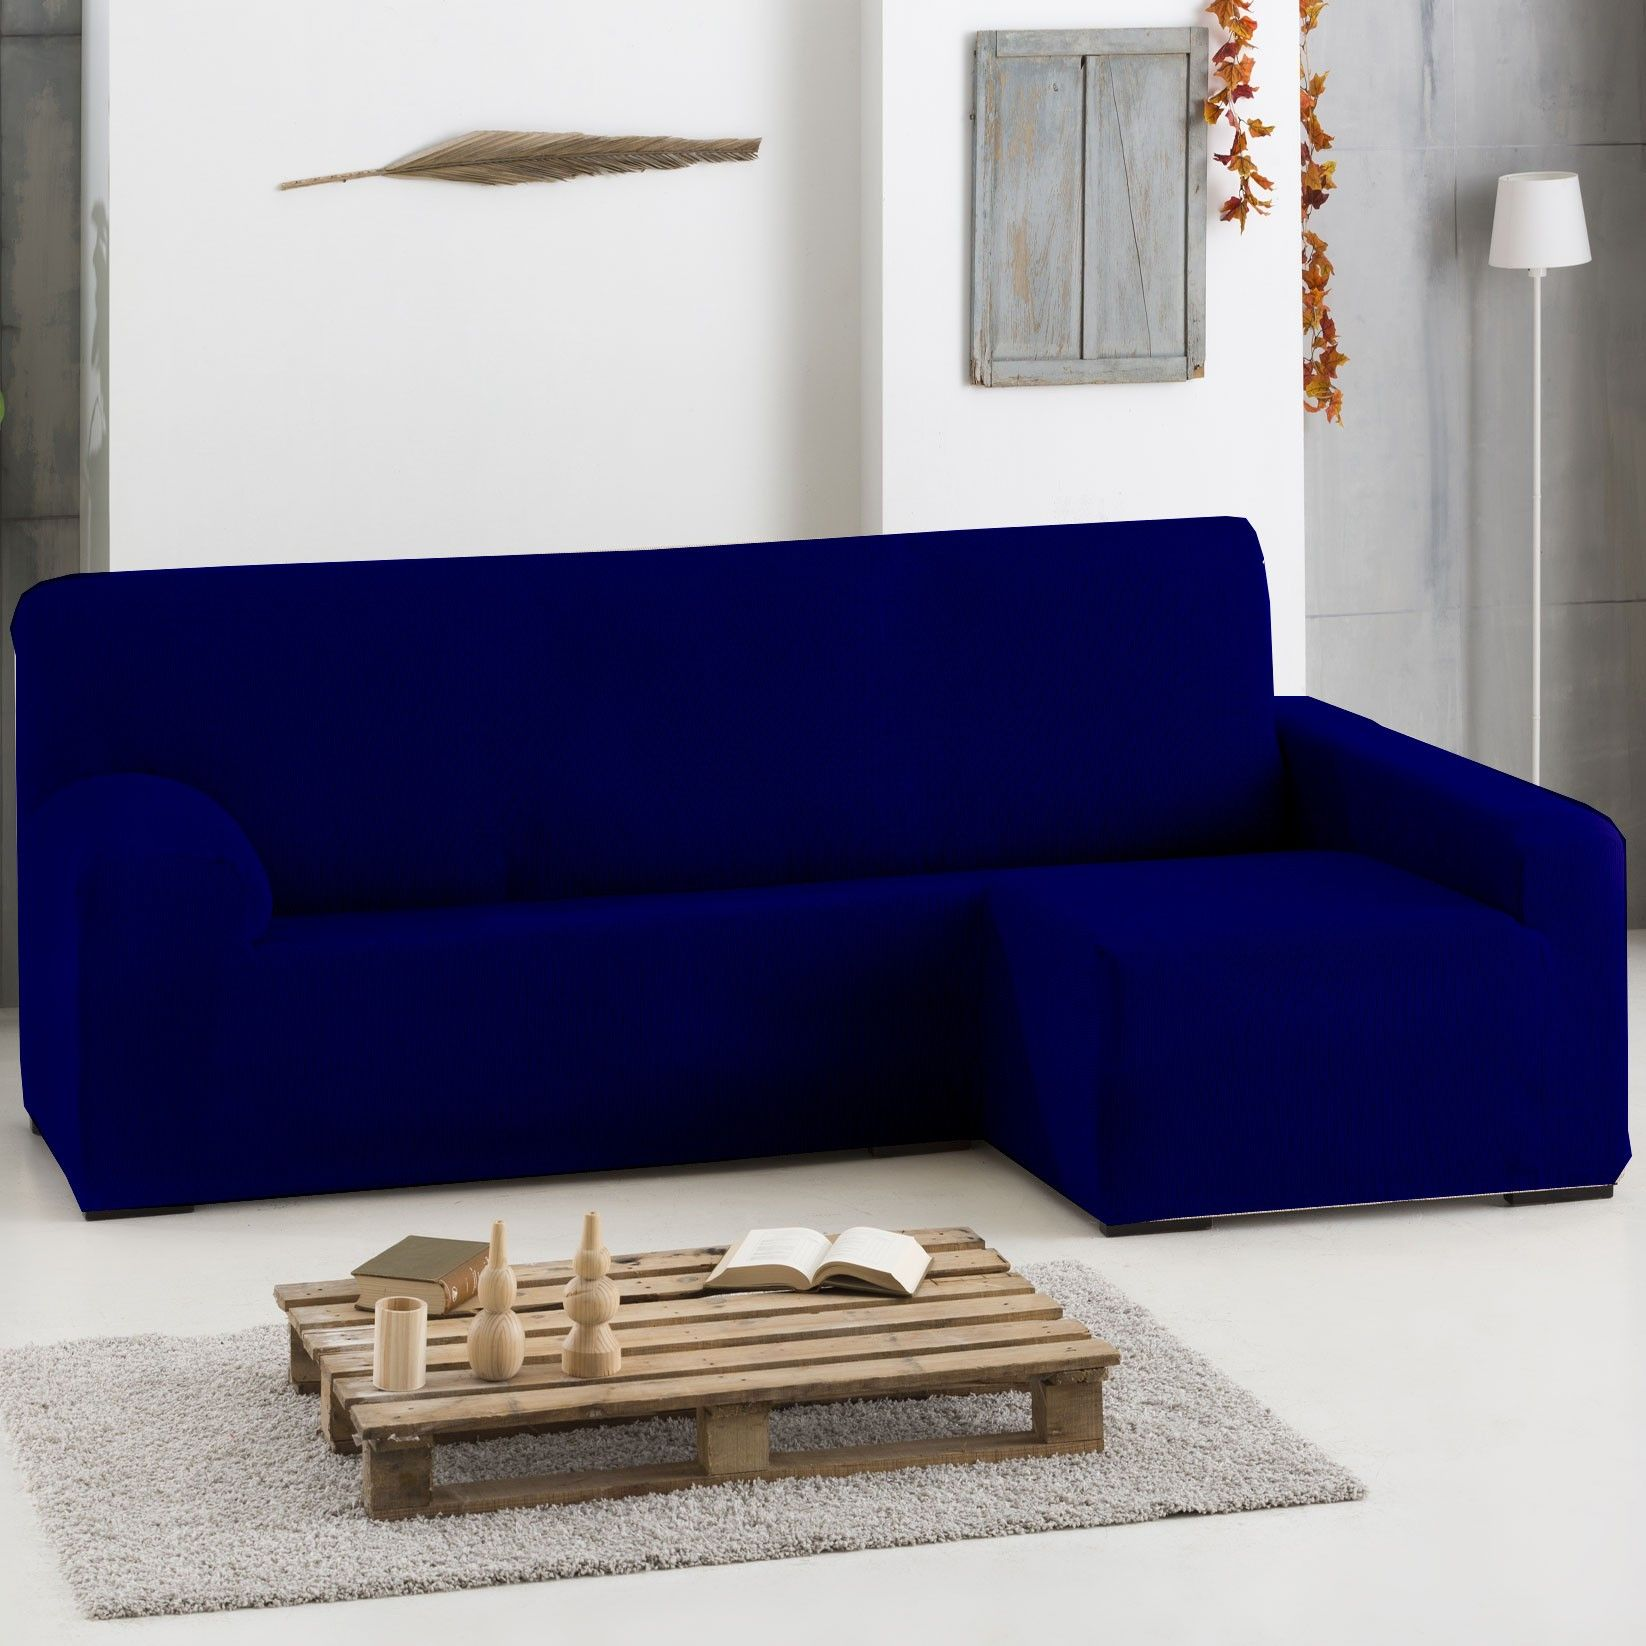 Remarkable Funda Elastica Chaise Longue Color Azul Marino Funda Para Pabps2019 Chair Design Images Pabps2019Com